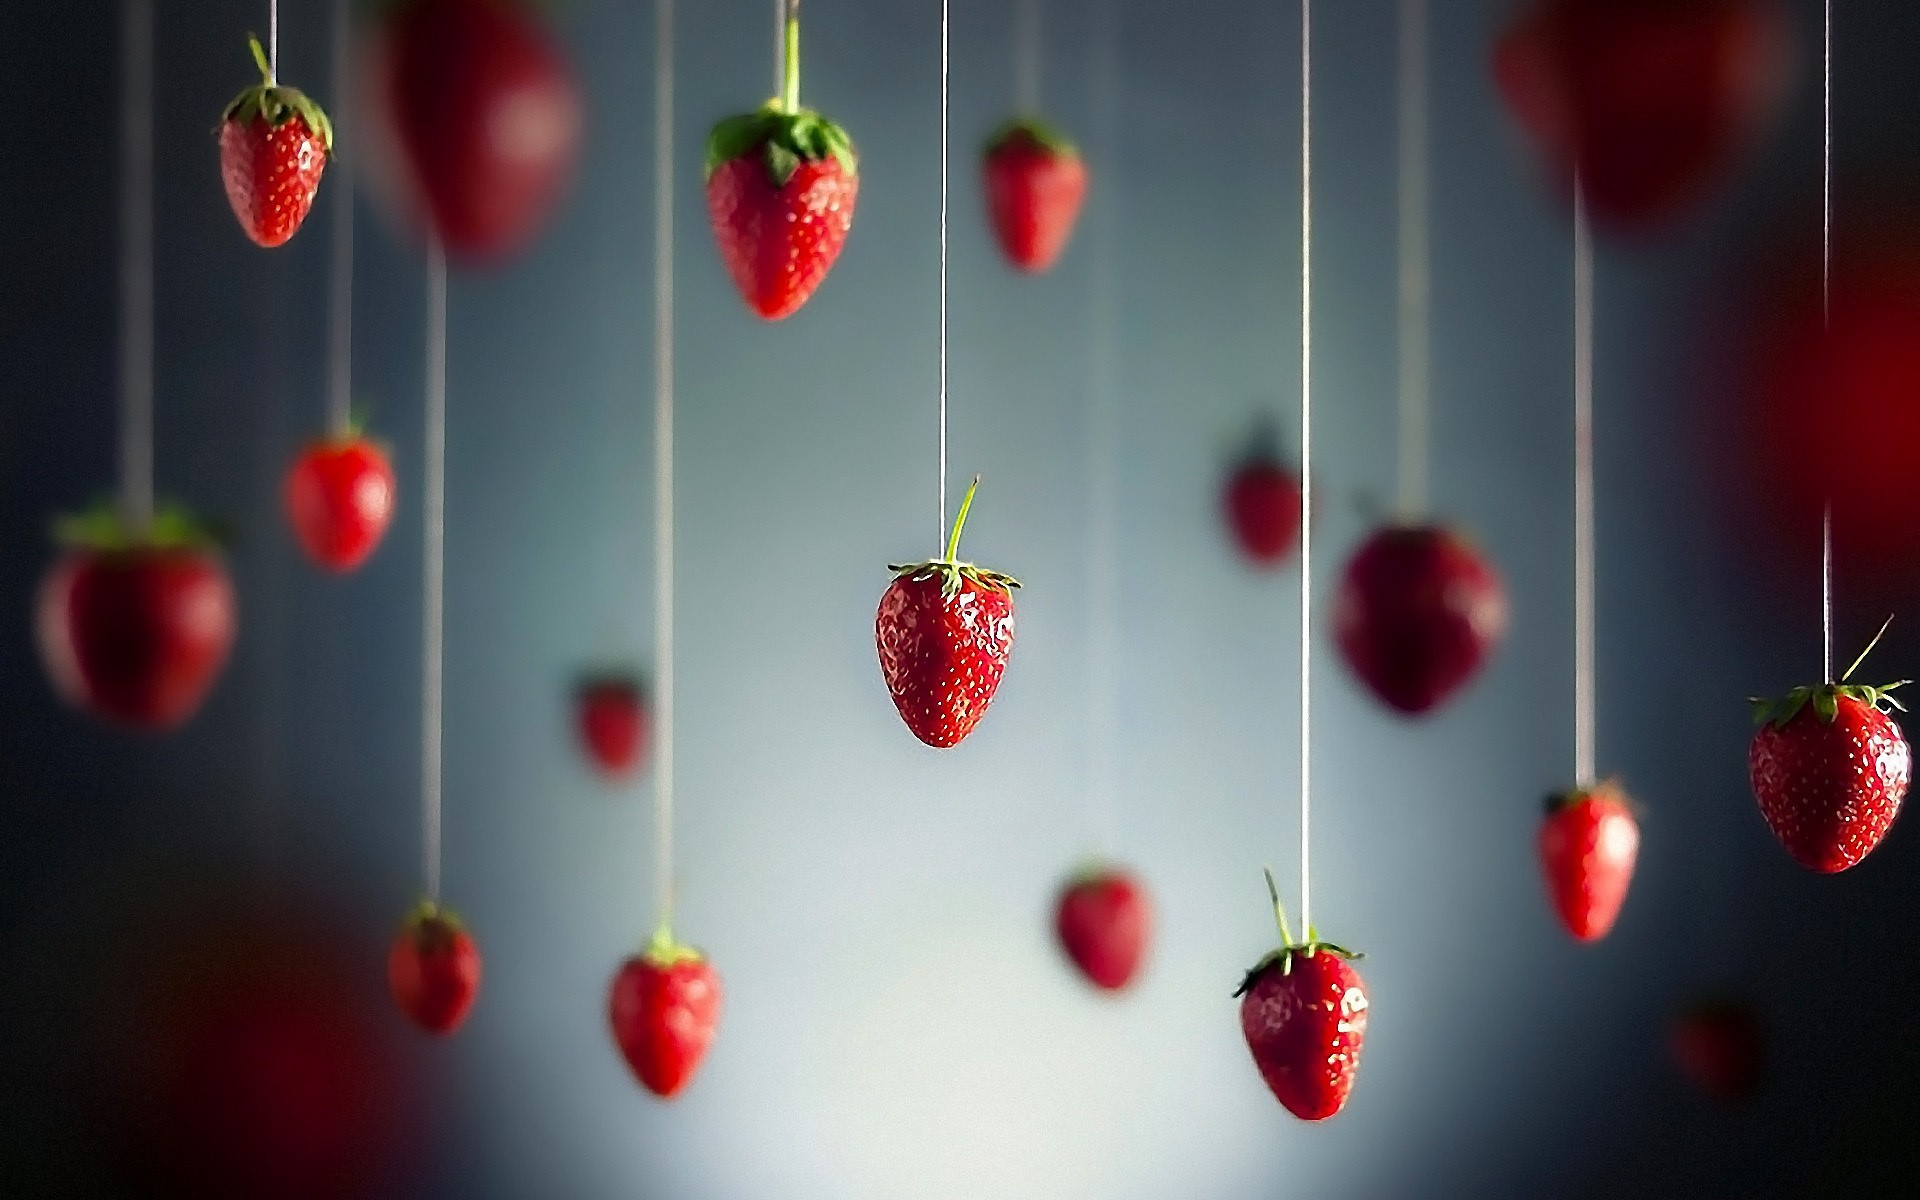 1920x1200 Minimalistic fruits hanging strawberries wallpaper |  | 15405 |  WallpaperUP